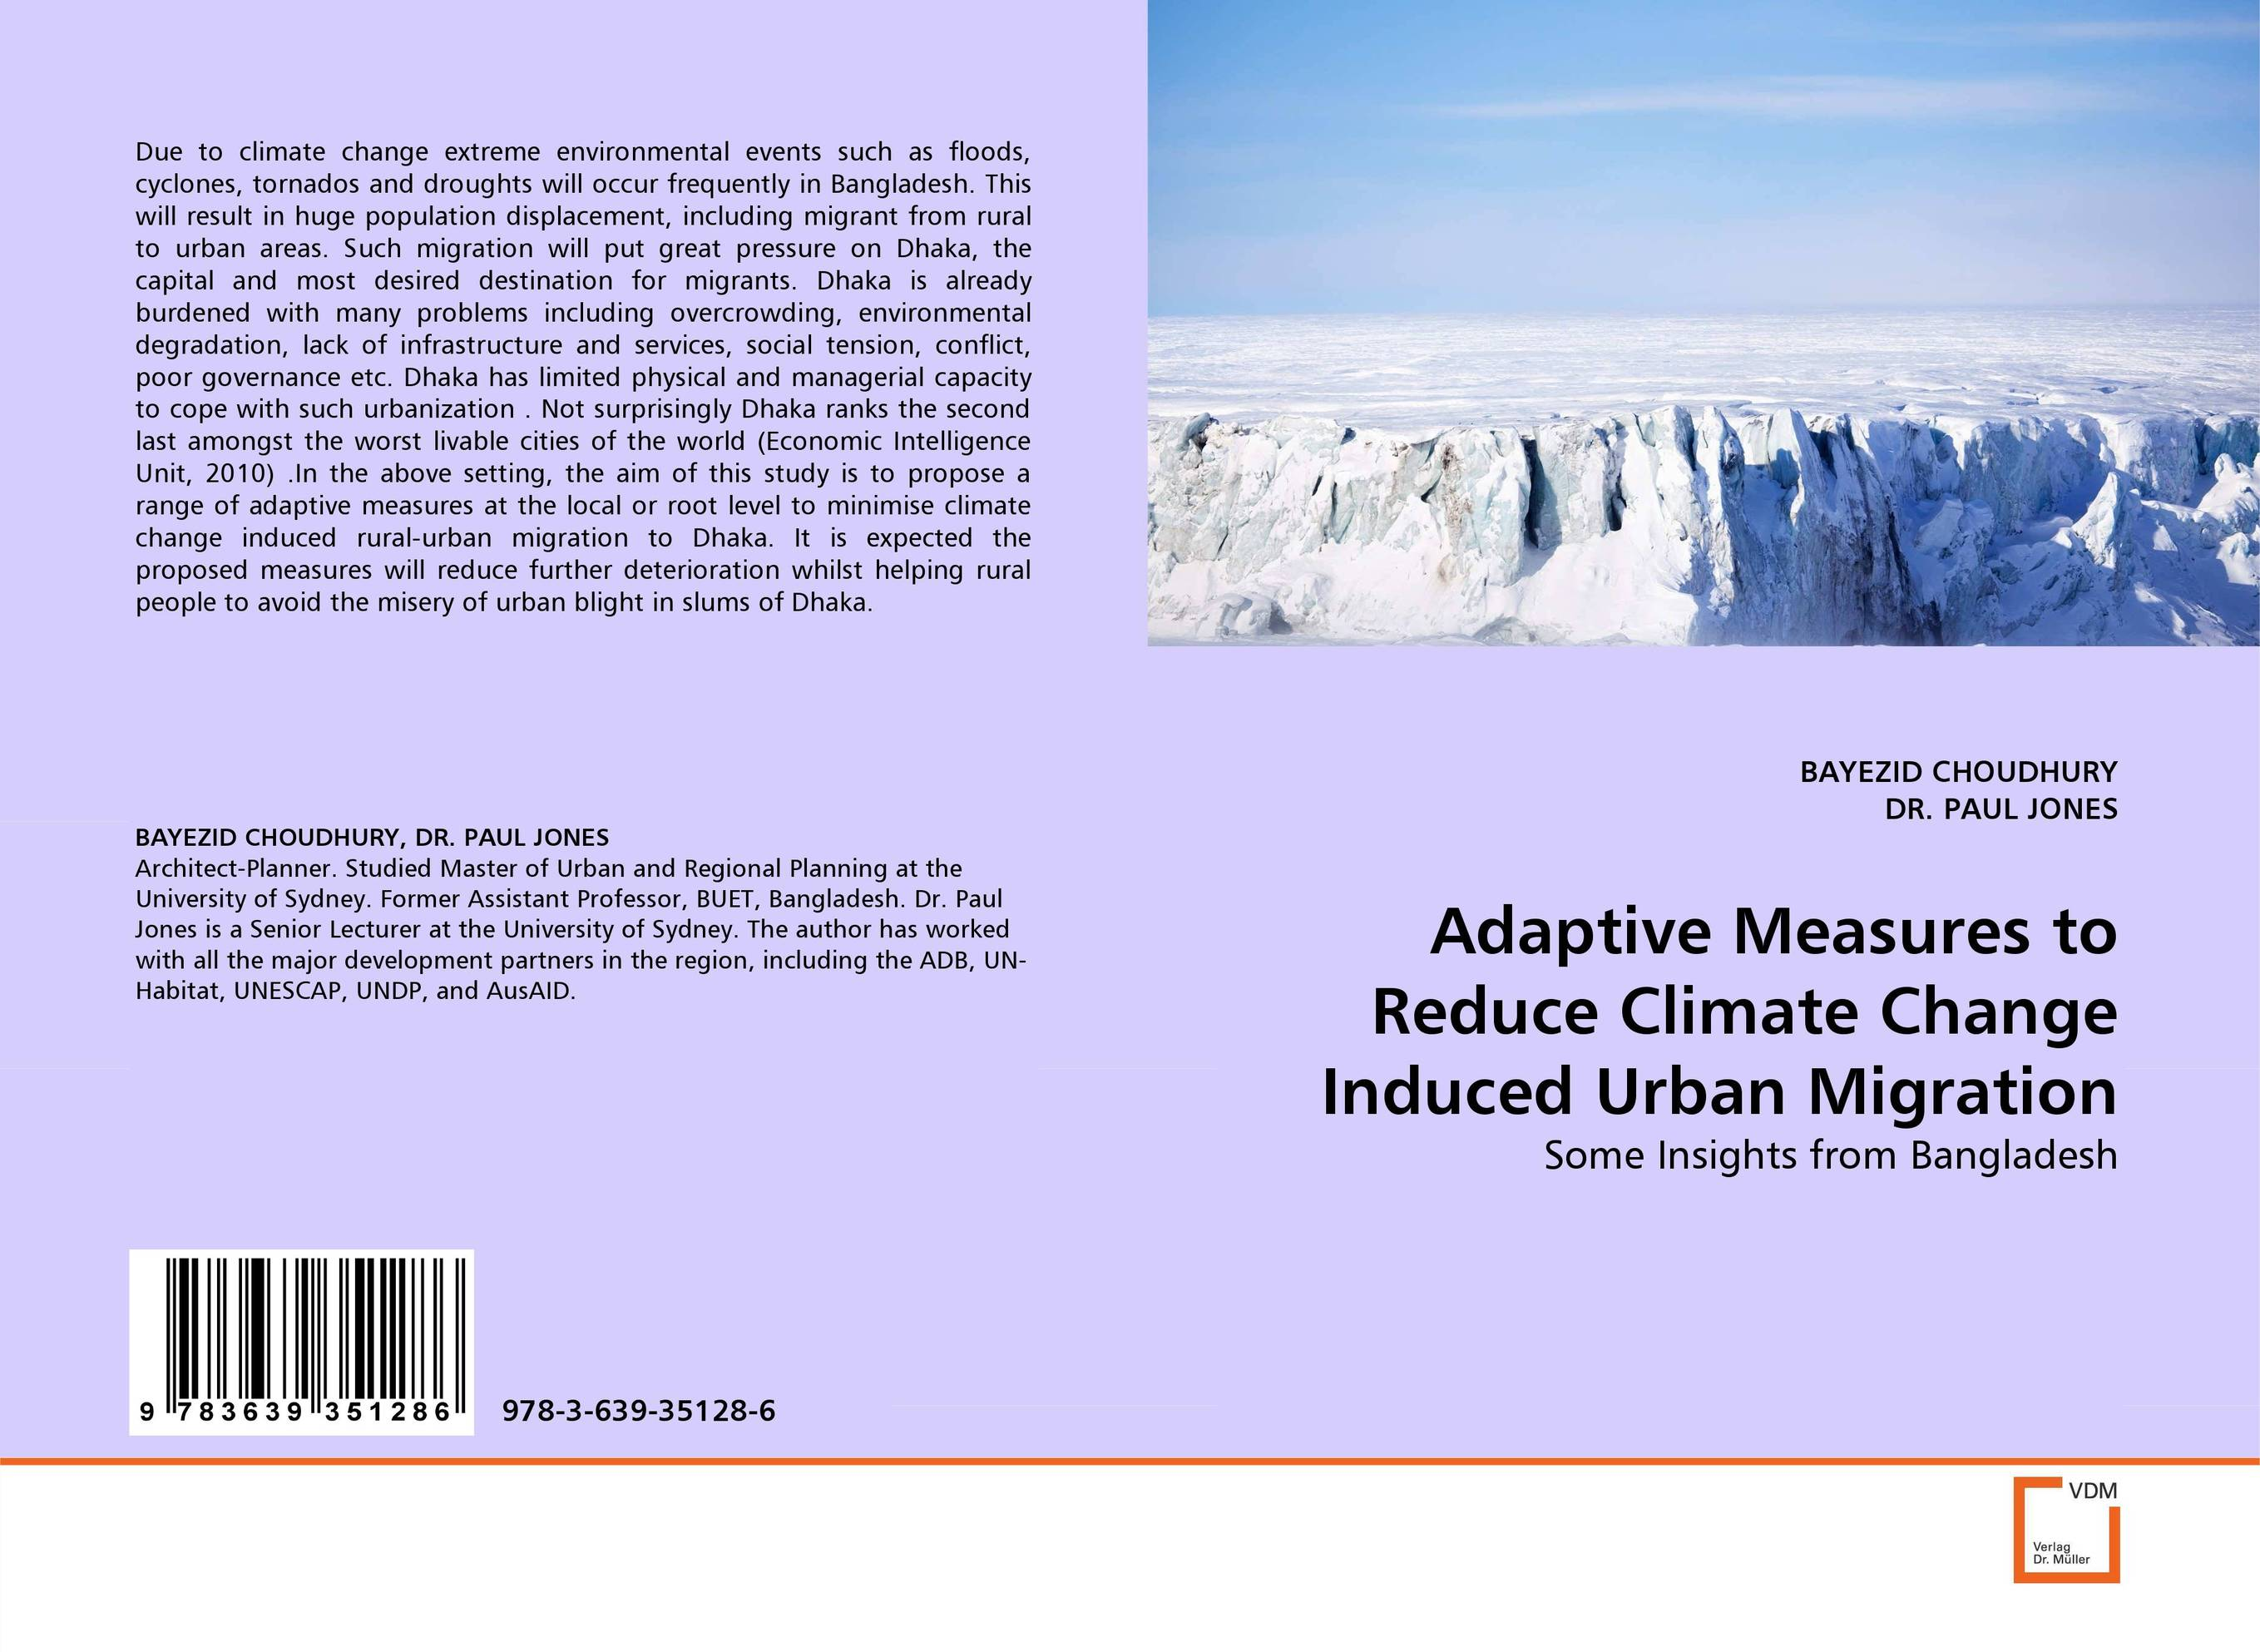 Adaptive Measures to Reduce Climate Change Induced  Urban Migration breastfeeding knowledge in dhaka bangladesh